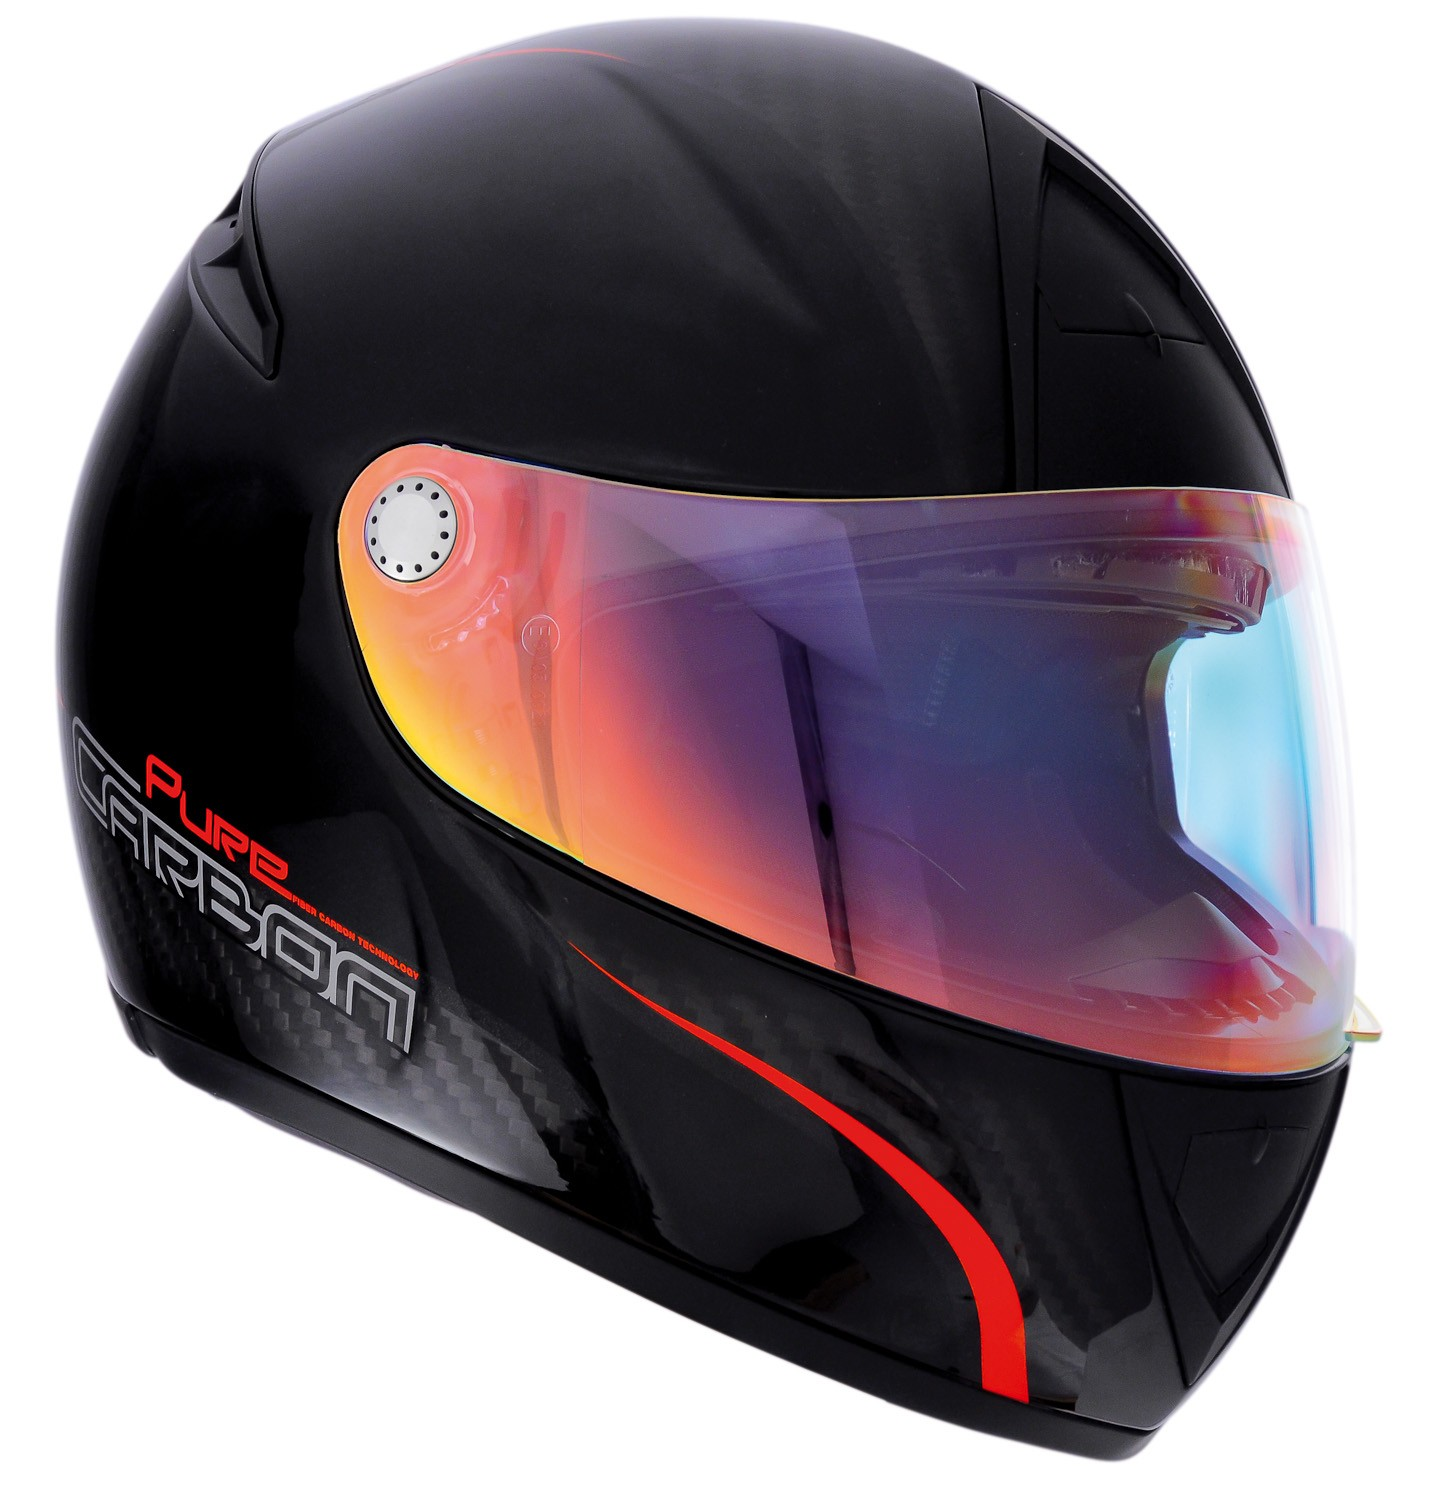 casque moto integral original votre site sp cialis dans les accessoires automobiles. Black Bedroom Furniture Sets. Home Design Ideas